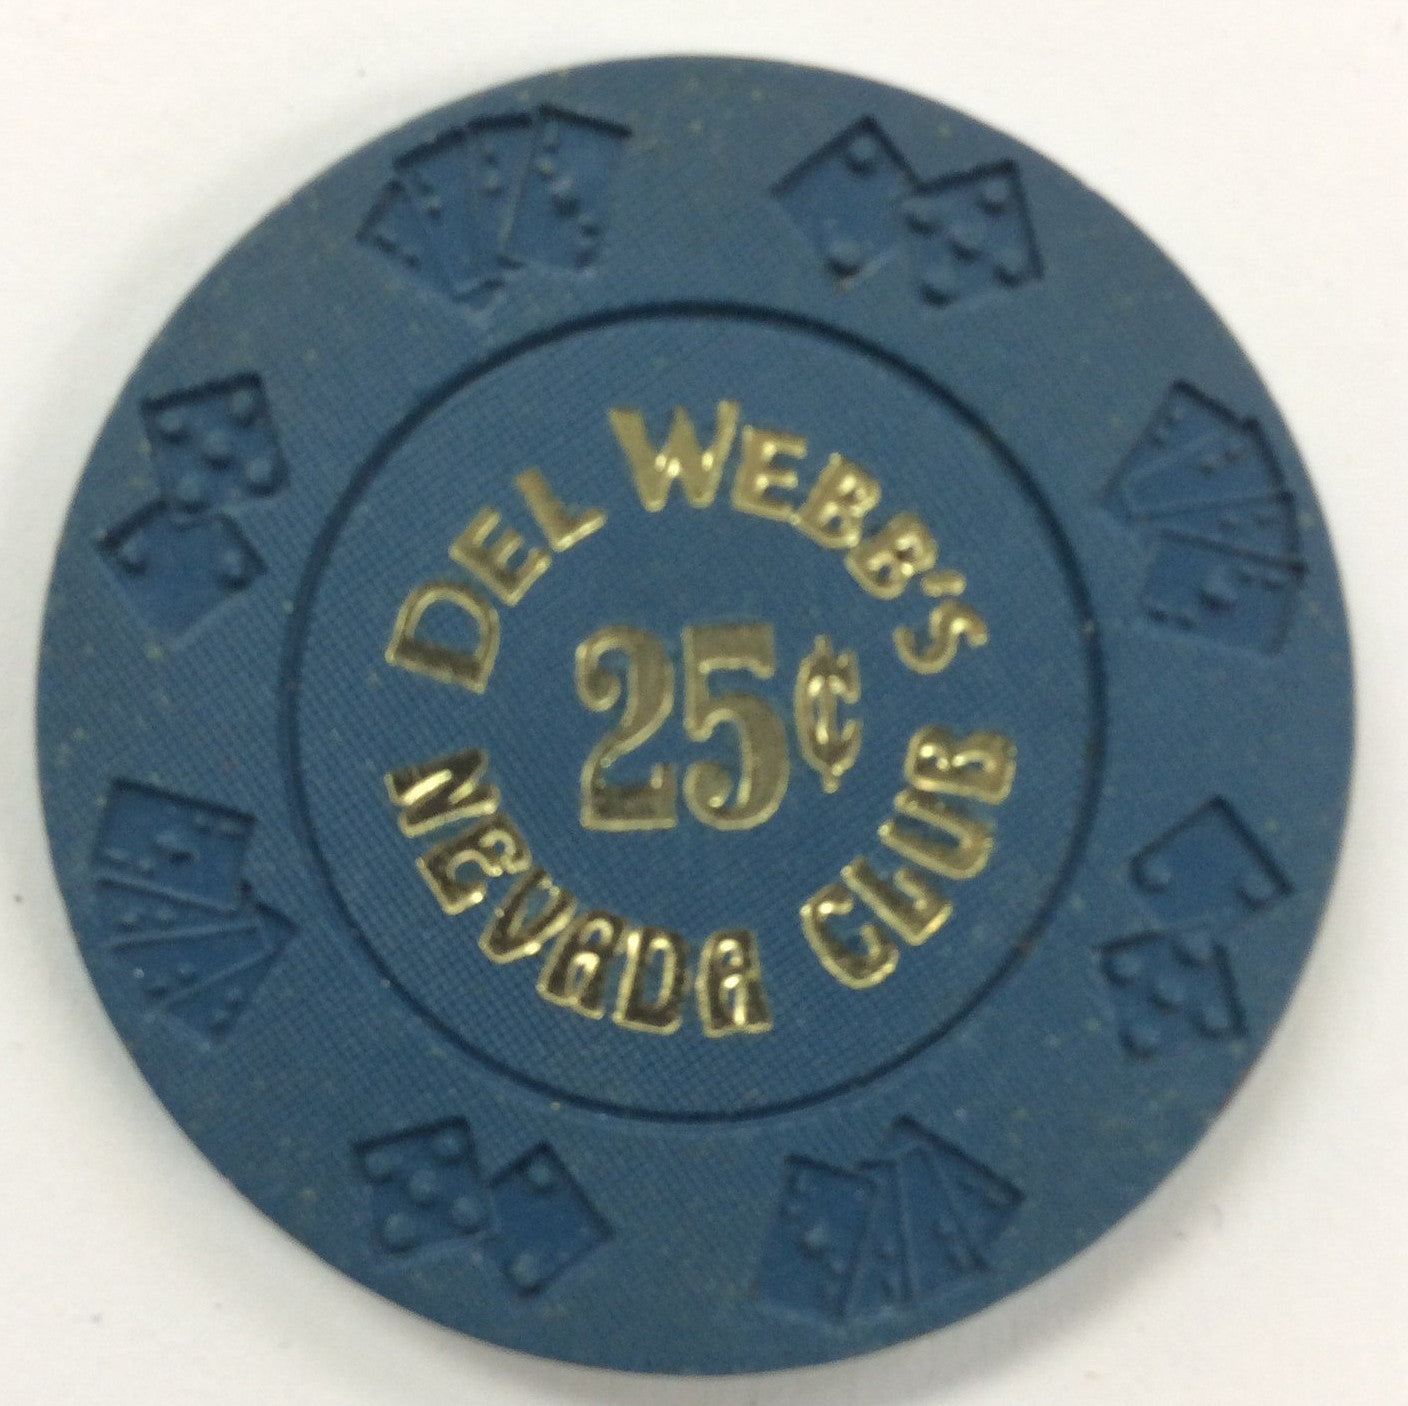 Nevada Club 25cent (blue) chip - Spinettis Gaming